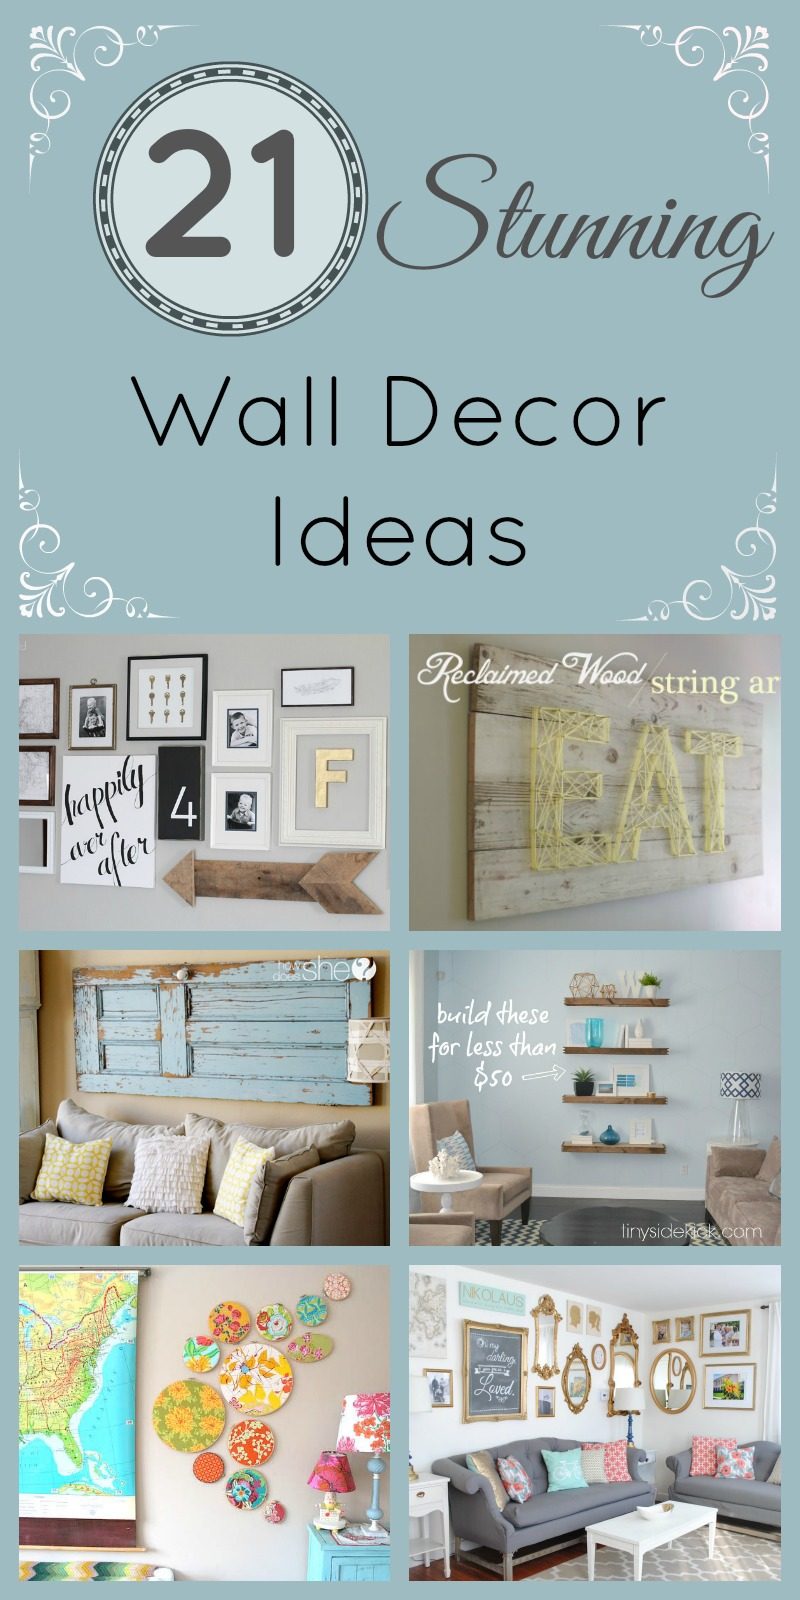 21 stunning wall decor ideas how does she for Collage mural ideas